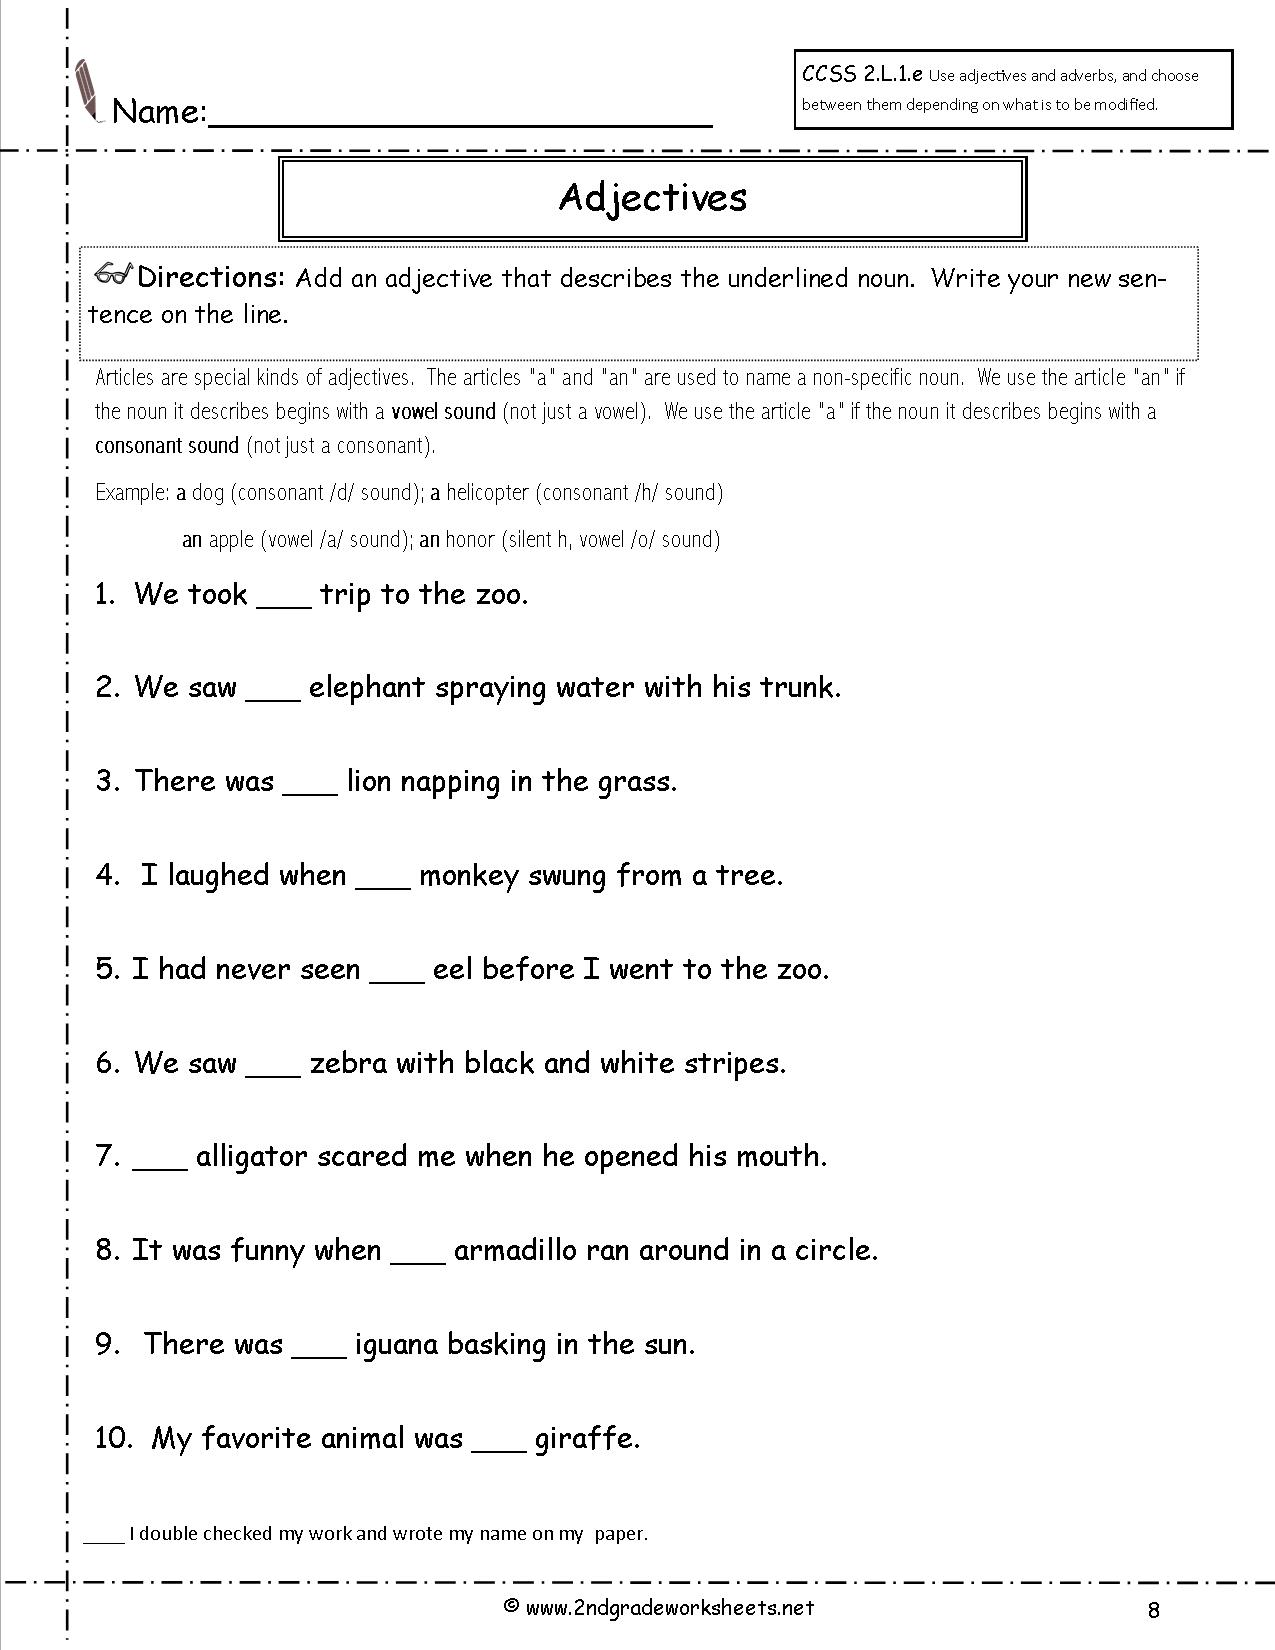 Worksheets Adjectives Worksheets free using adjectives worksheets a or an worksheet